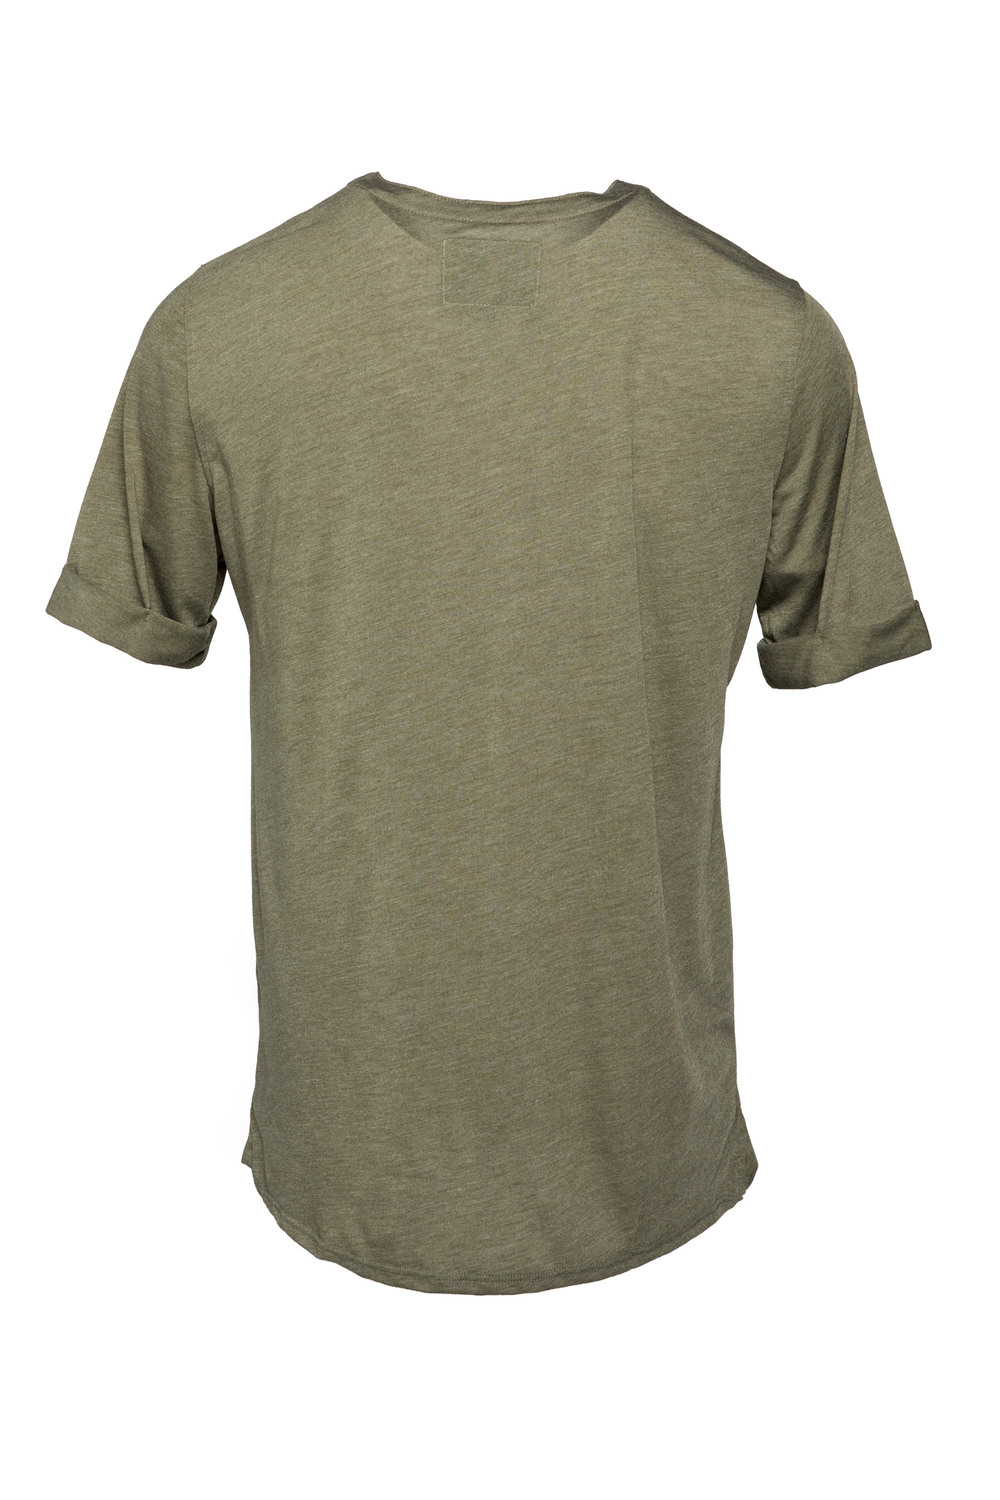 Palm Springs T-Shirt - Sage